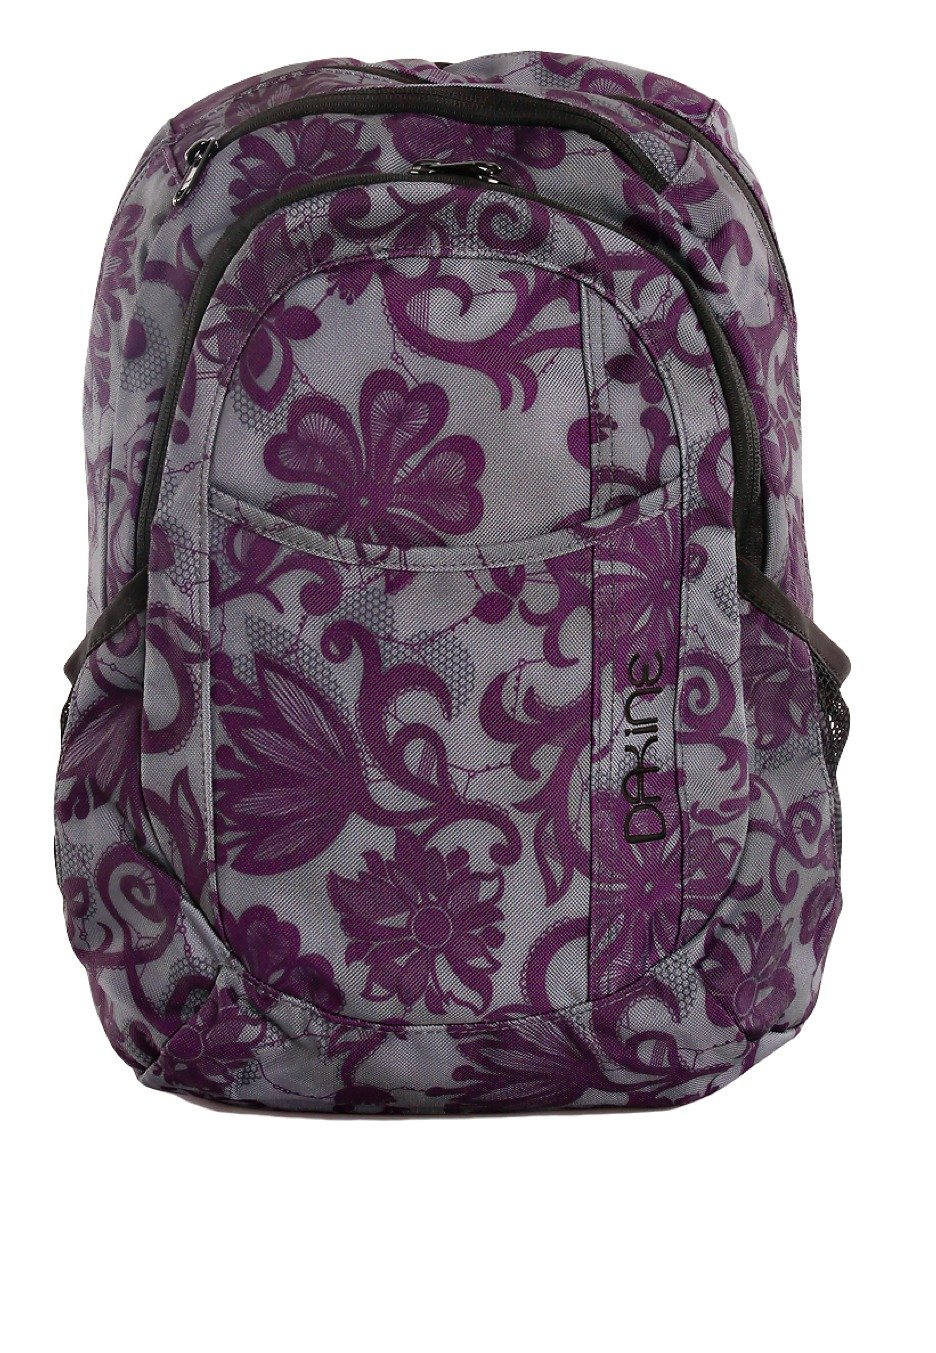 Dakine - Garden Pack Lacey - Girl Backpack - Impericon.com Worldwide